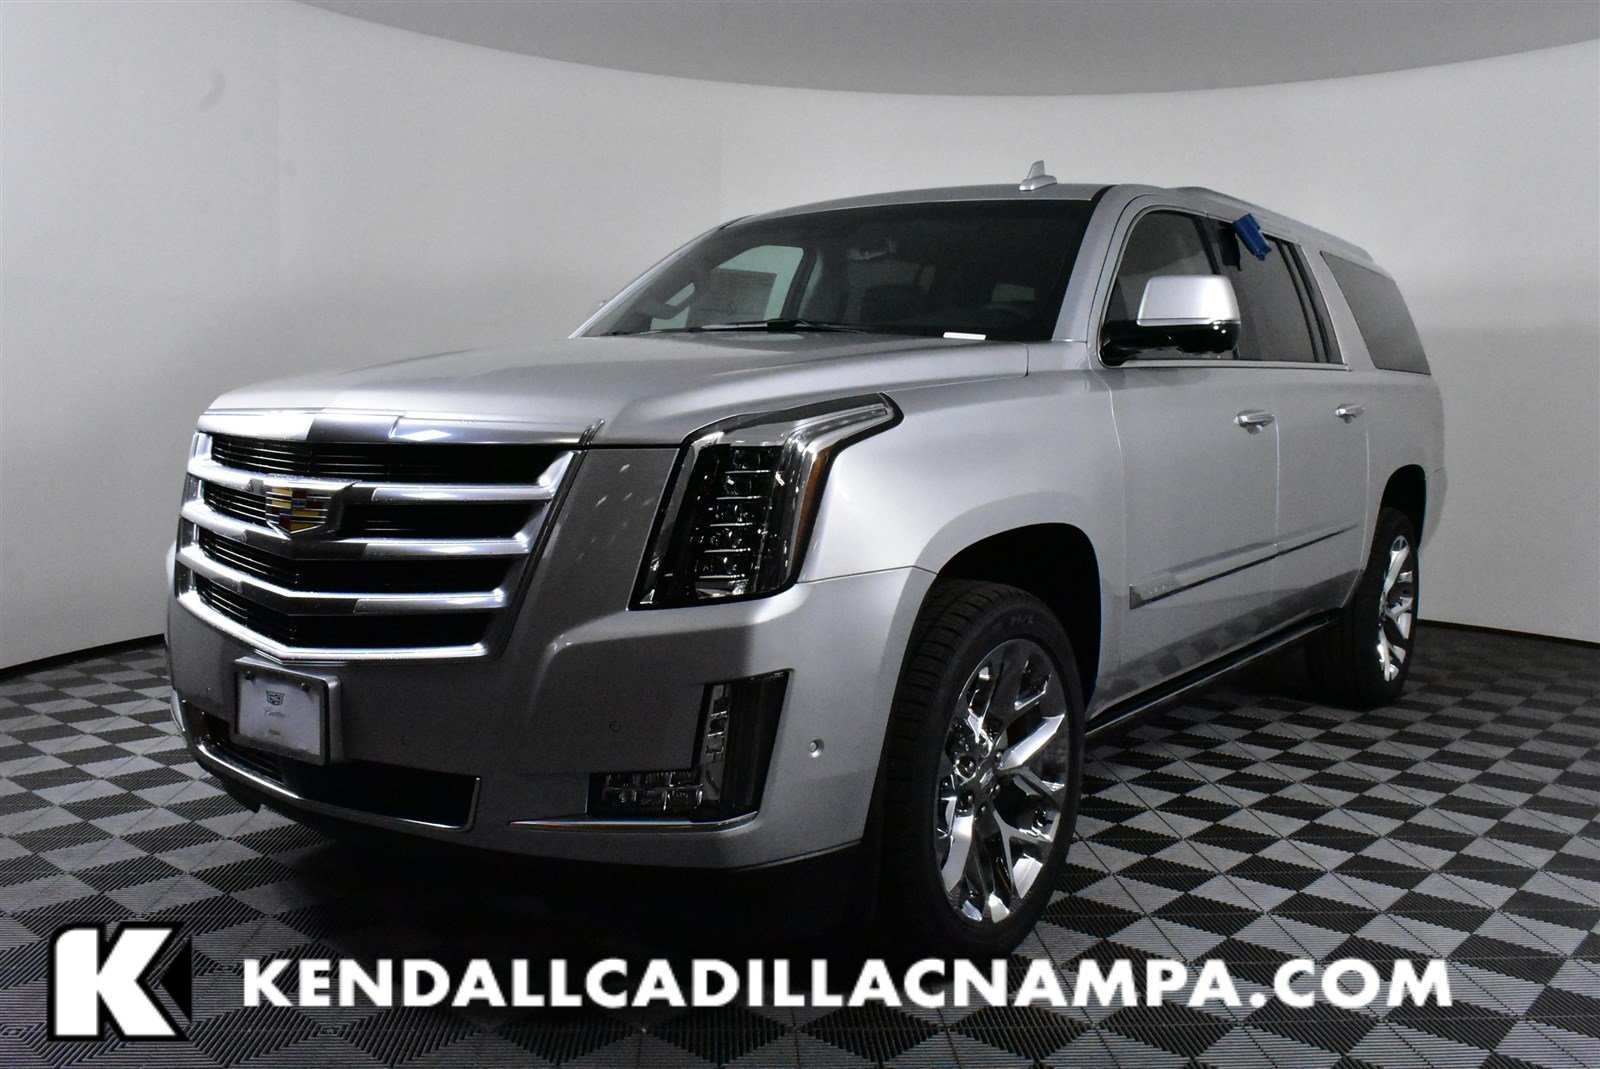 13 New 2019 Cadillac Escalade New Concept